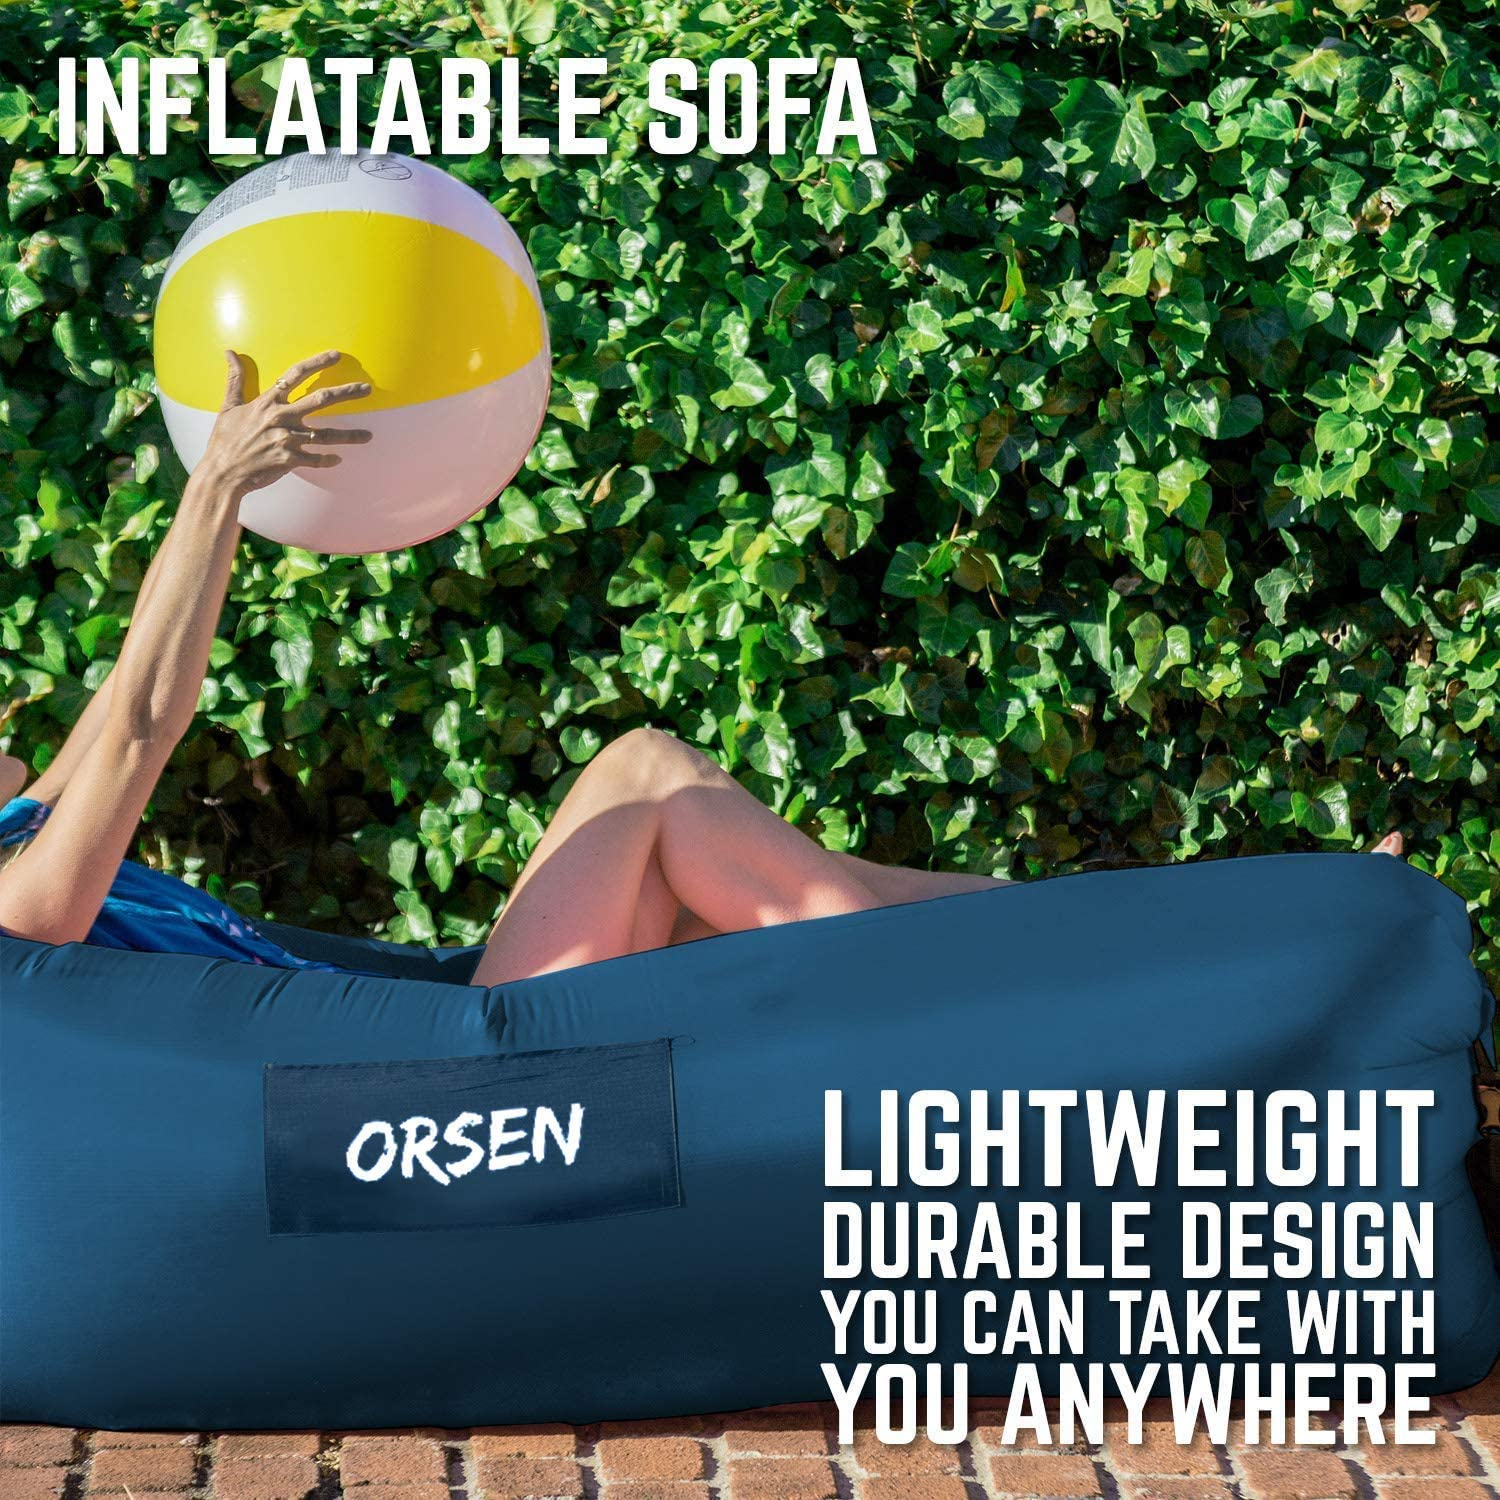 Waterproof Air Sofa Chair with Carry Bag,Inflatable Couch Air loungers Lazy bag for Indoor//Outdoor Camping,Beach,Swimming Pools,Park,Garden,Travelling etc Orsen Inflatable Lounger